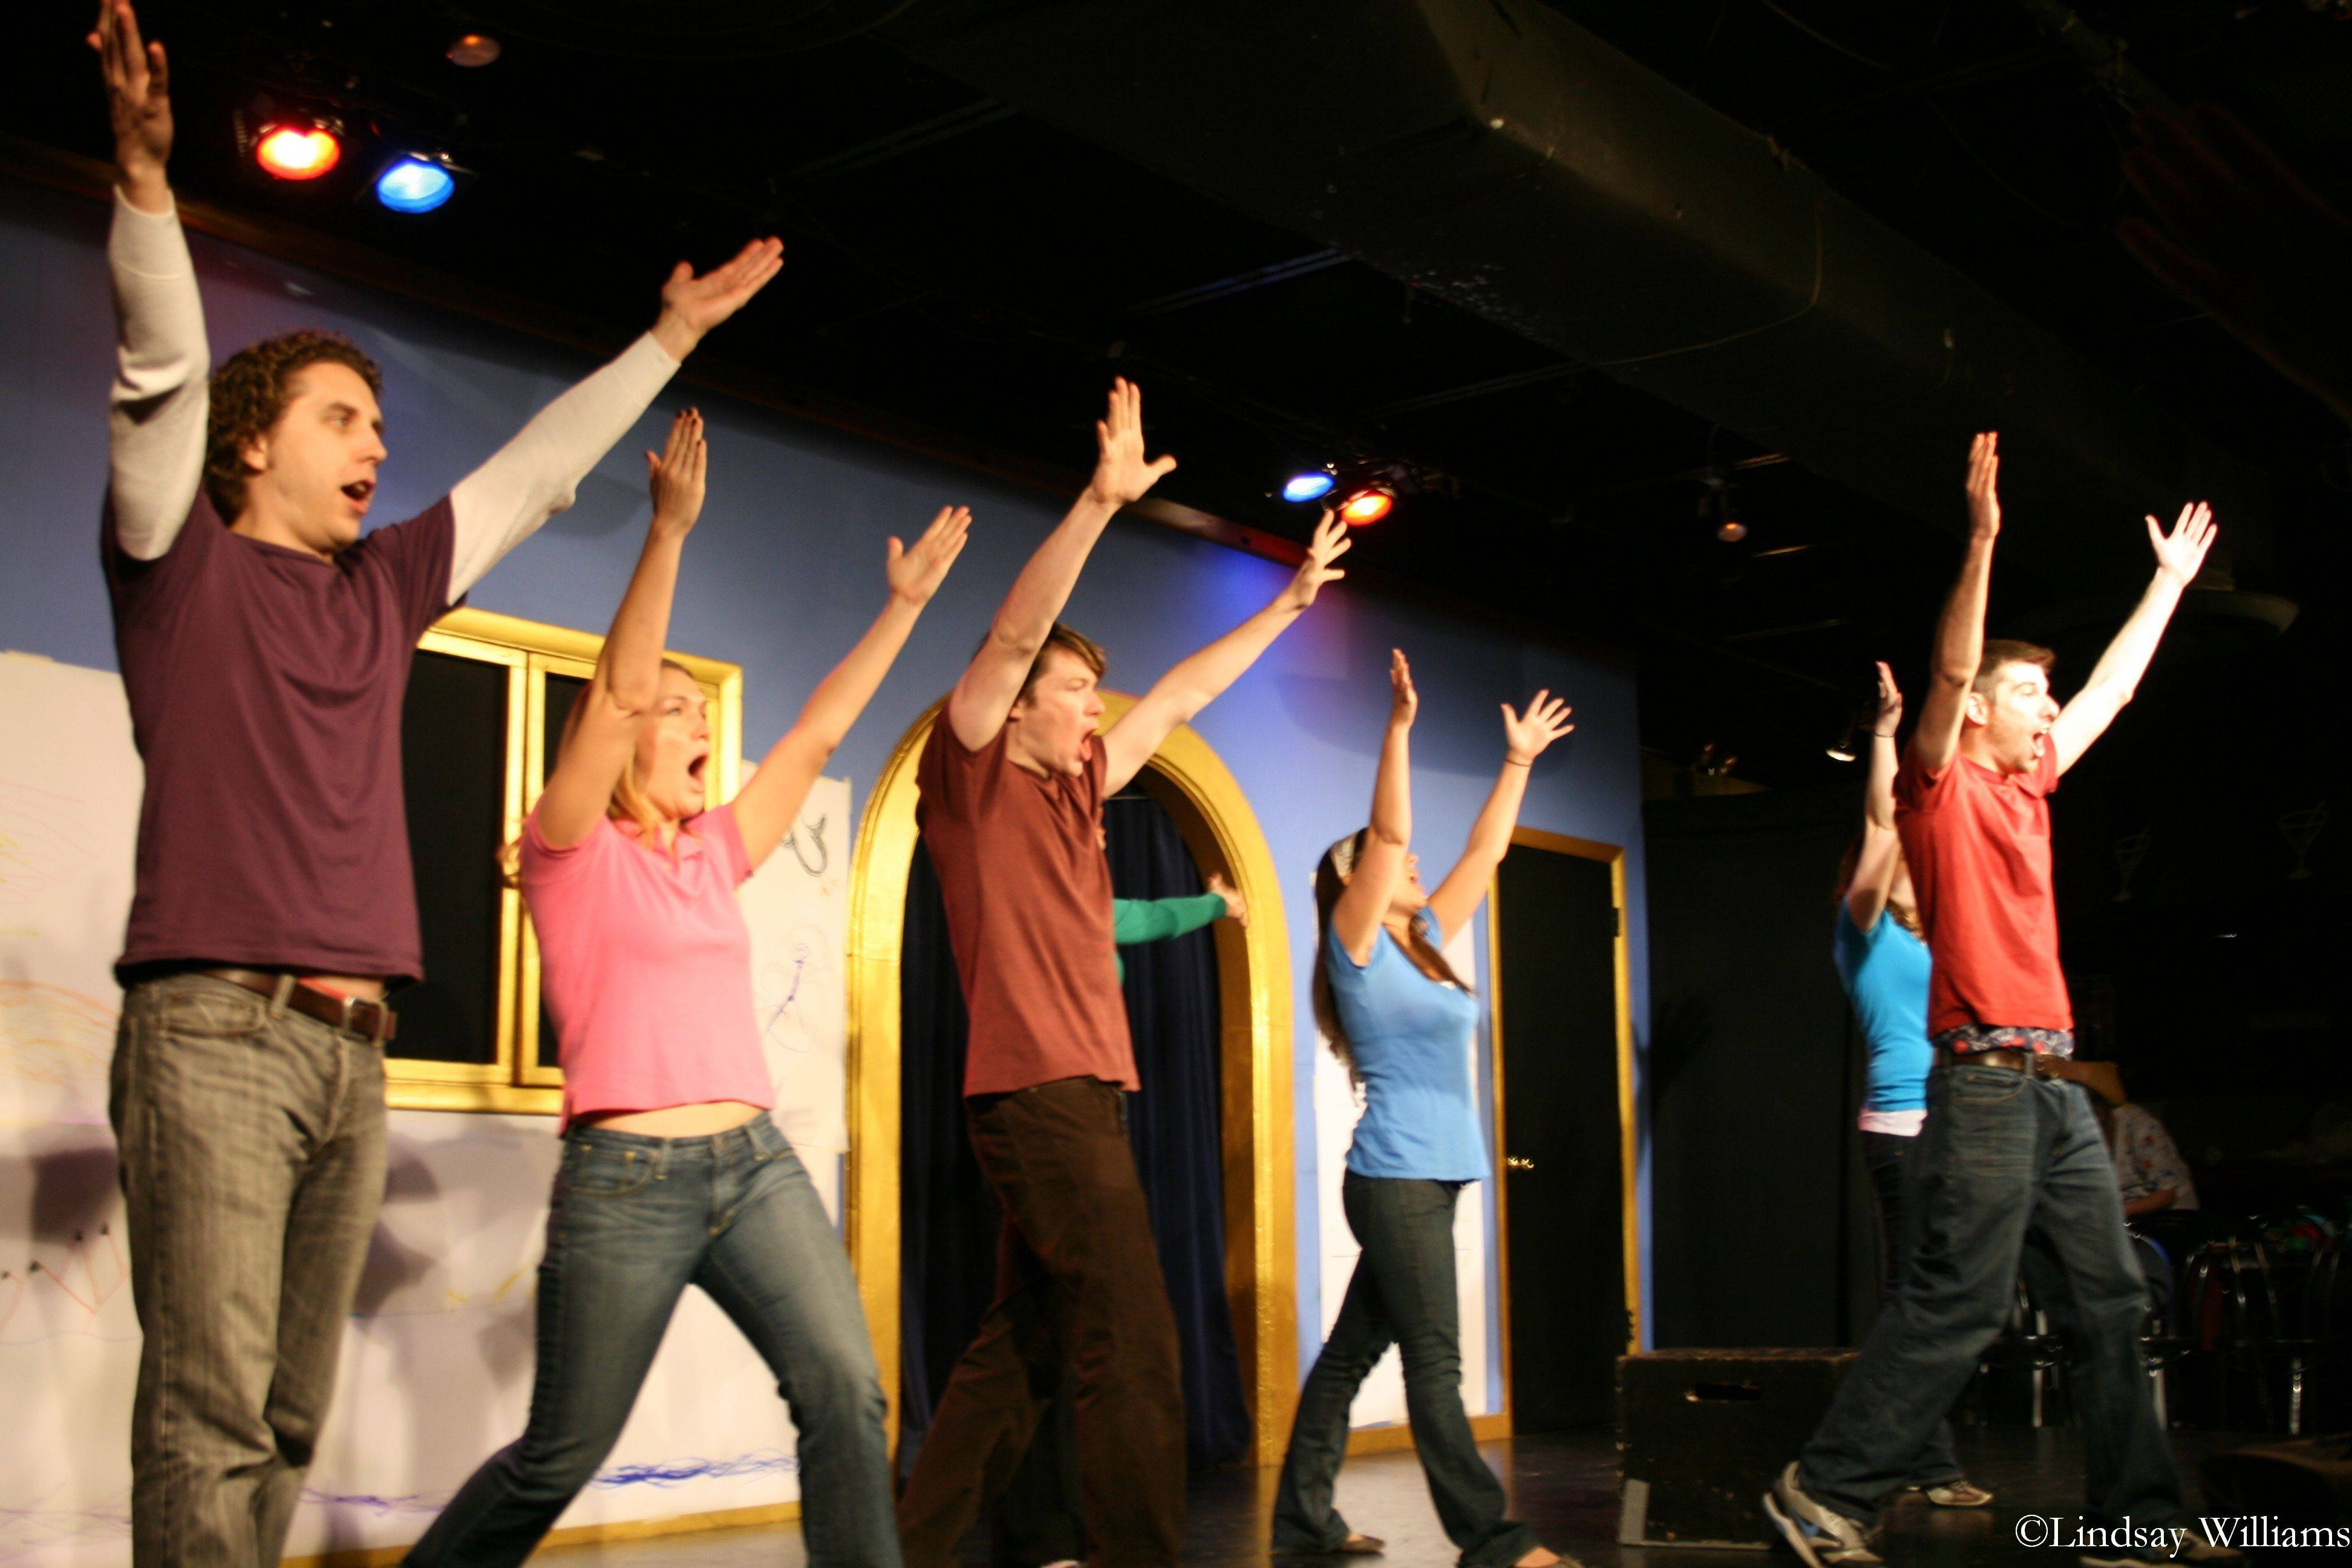 Tim Stoltenberg, left, Julie Poteet, Austin Campion, Rachel Grandi and John Sabine comprise Storytown, which includes children from the audience in its interactive improv performances.